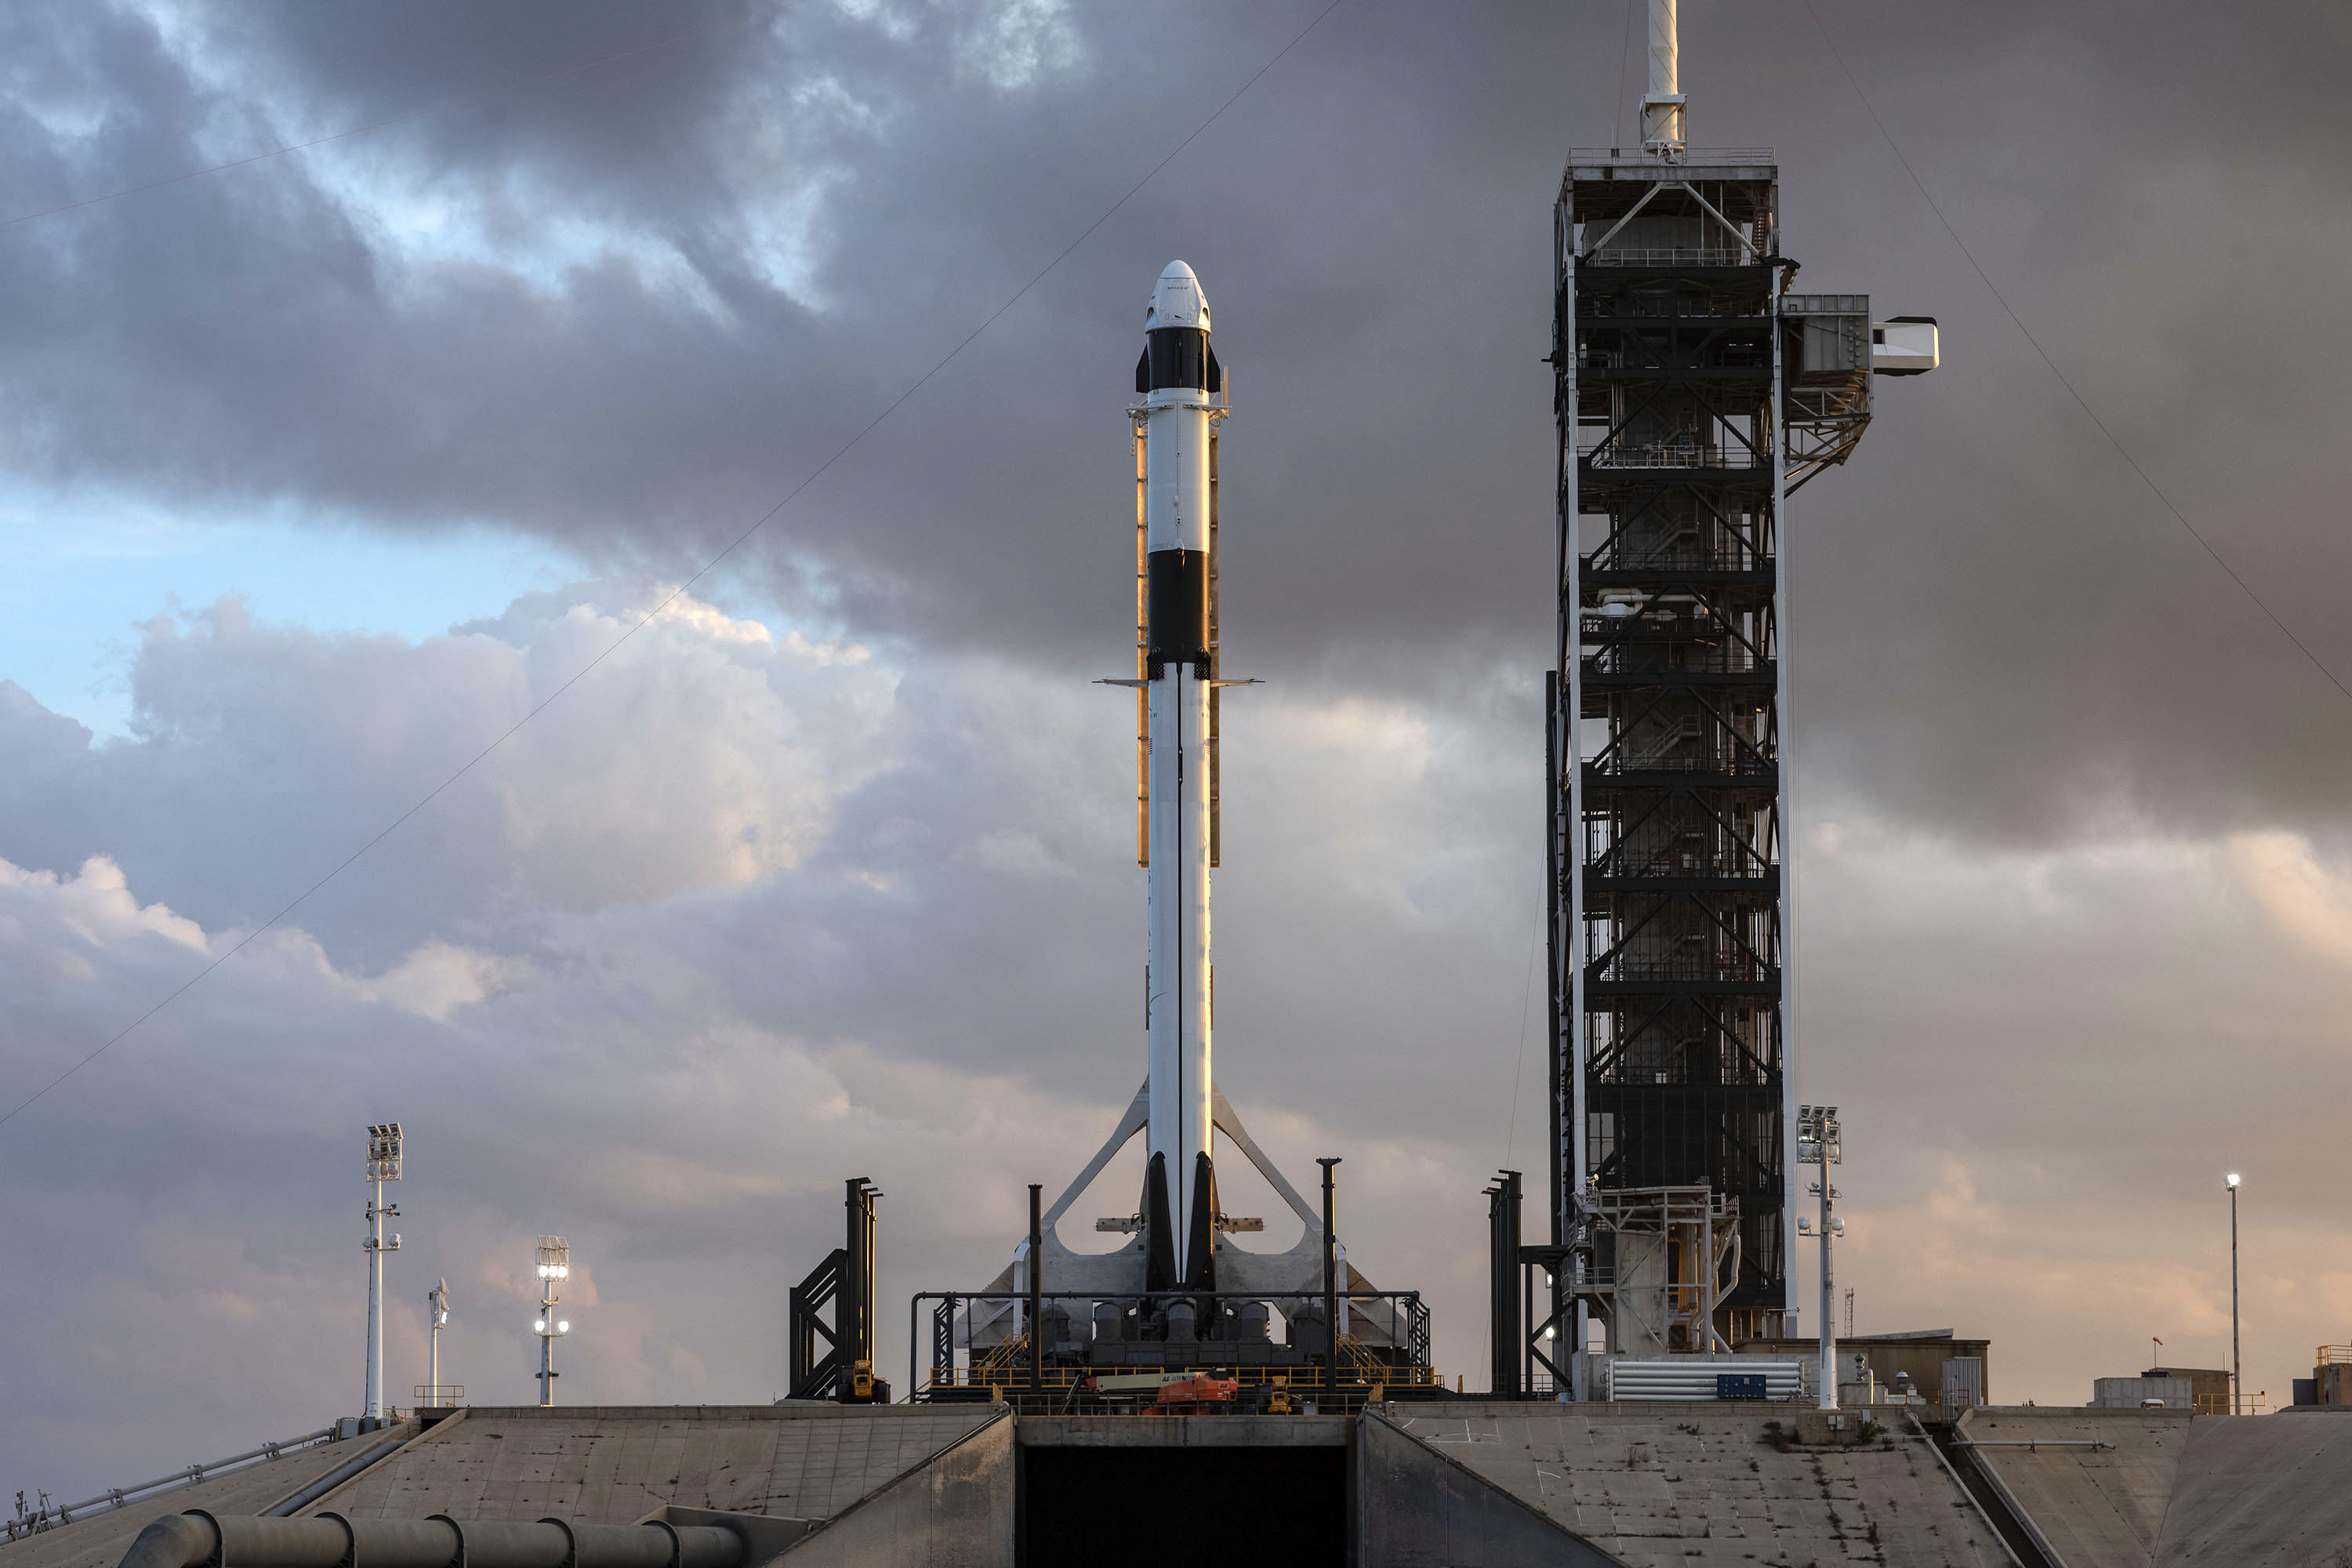 SpaceX Crew Dragon capsule & Falcon 9 Booster. (SpaceX)